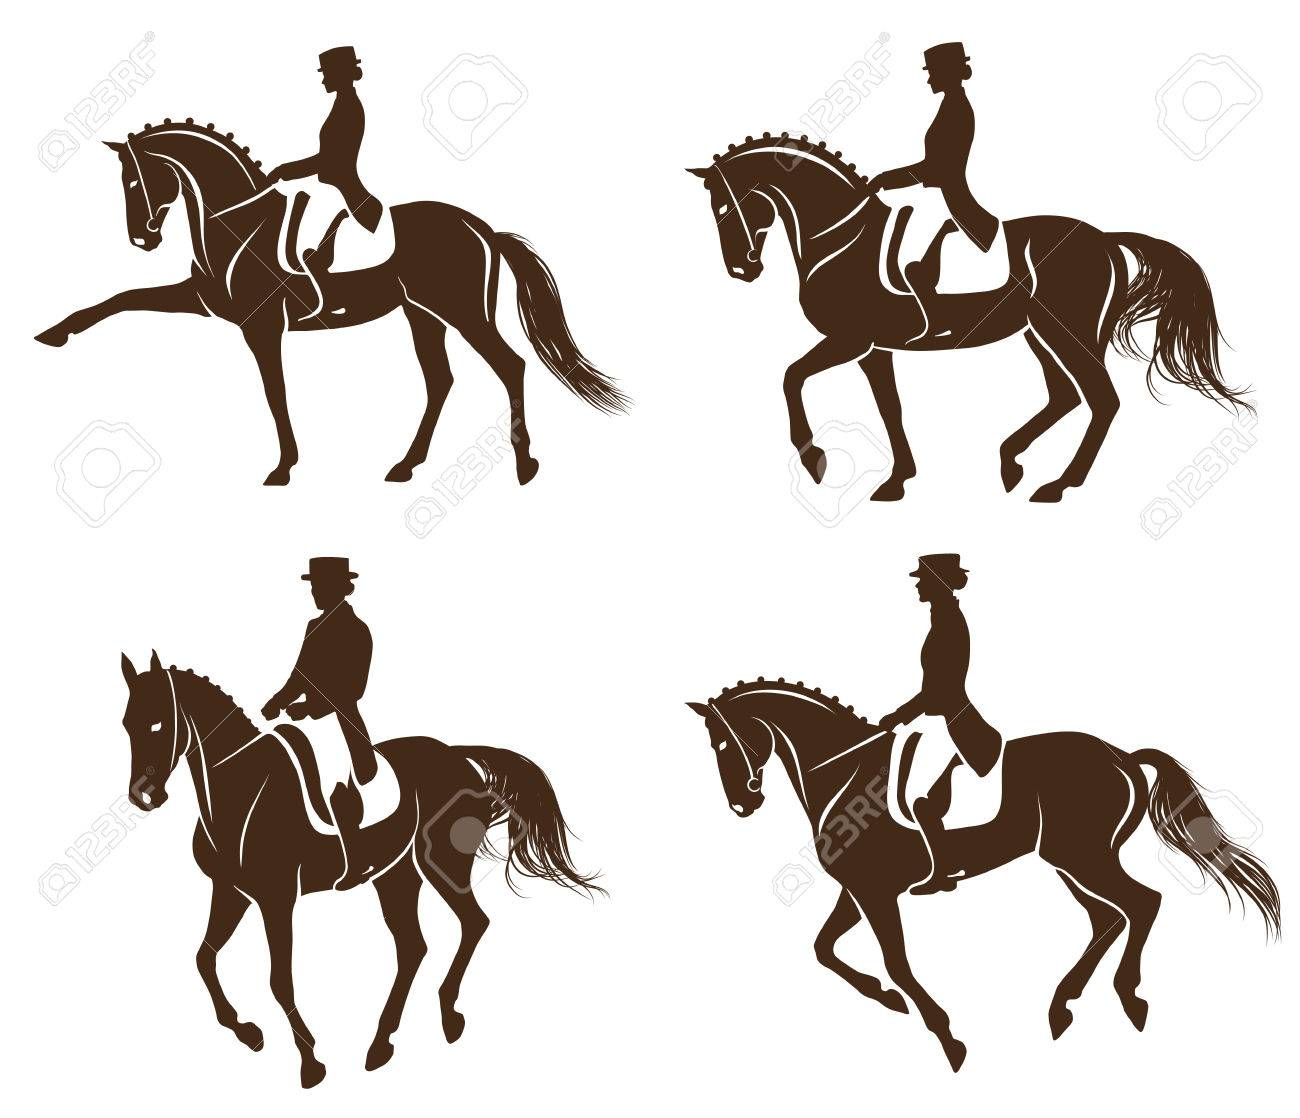 4 detailed silhouettes of horses with rider performing dressage - 69734682